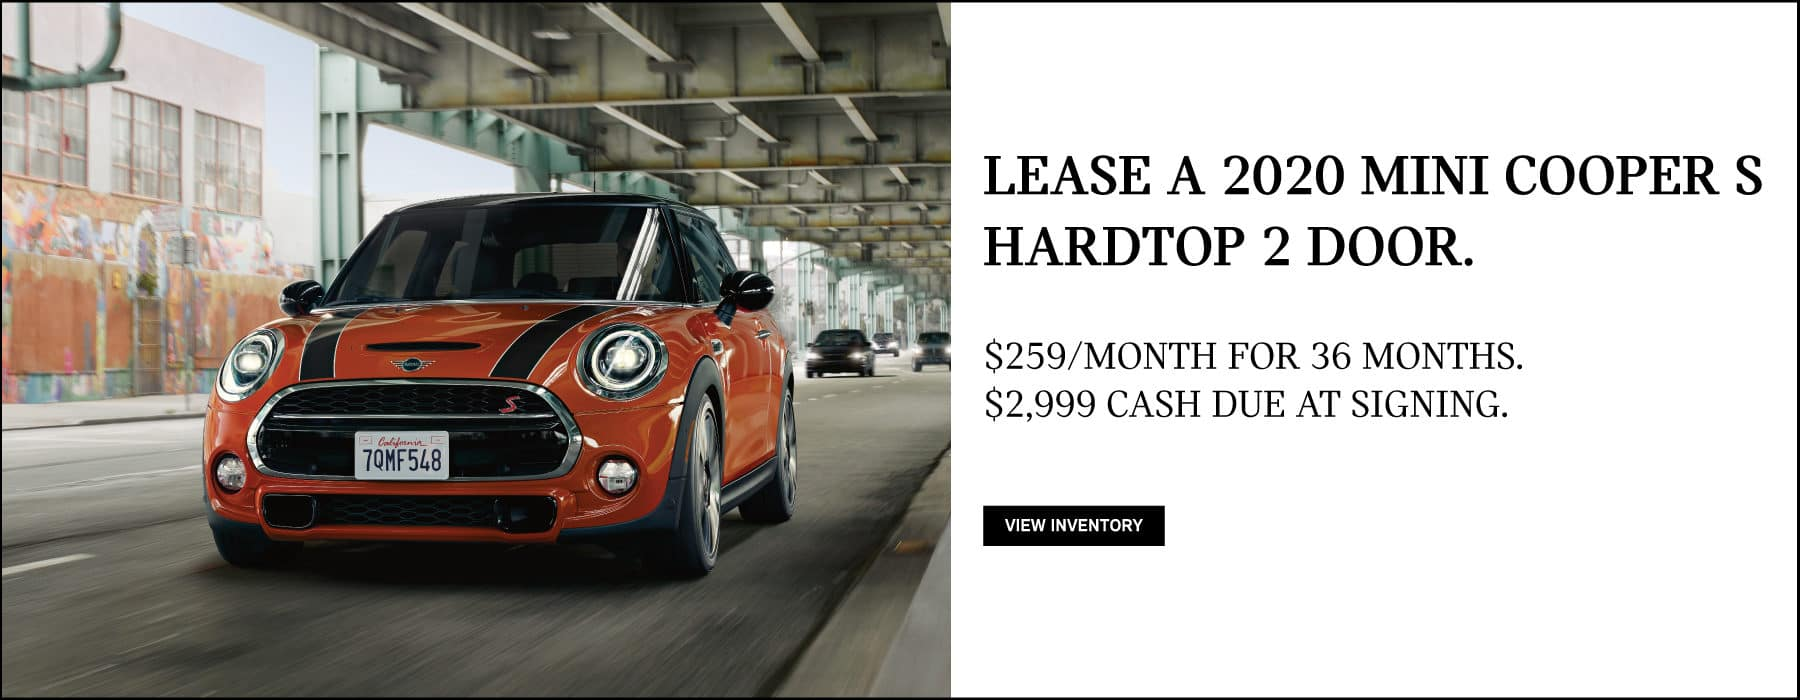 Lease a 2020 MINI Cooper S Hardtop 2 Door for $259/mo. View Inventory